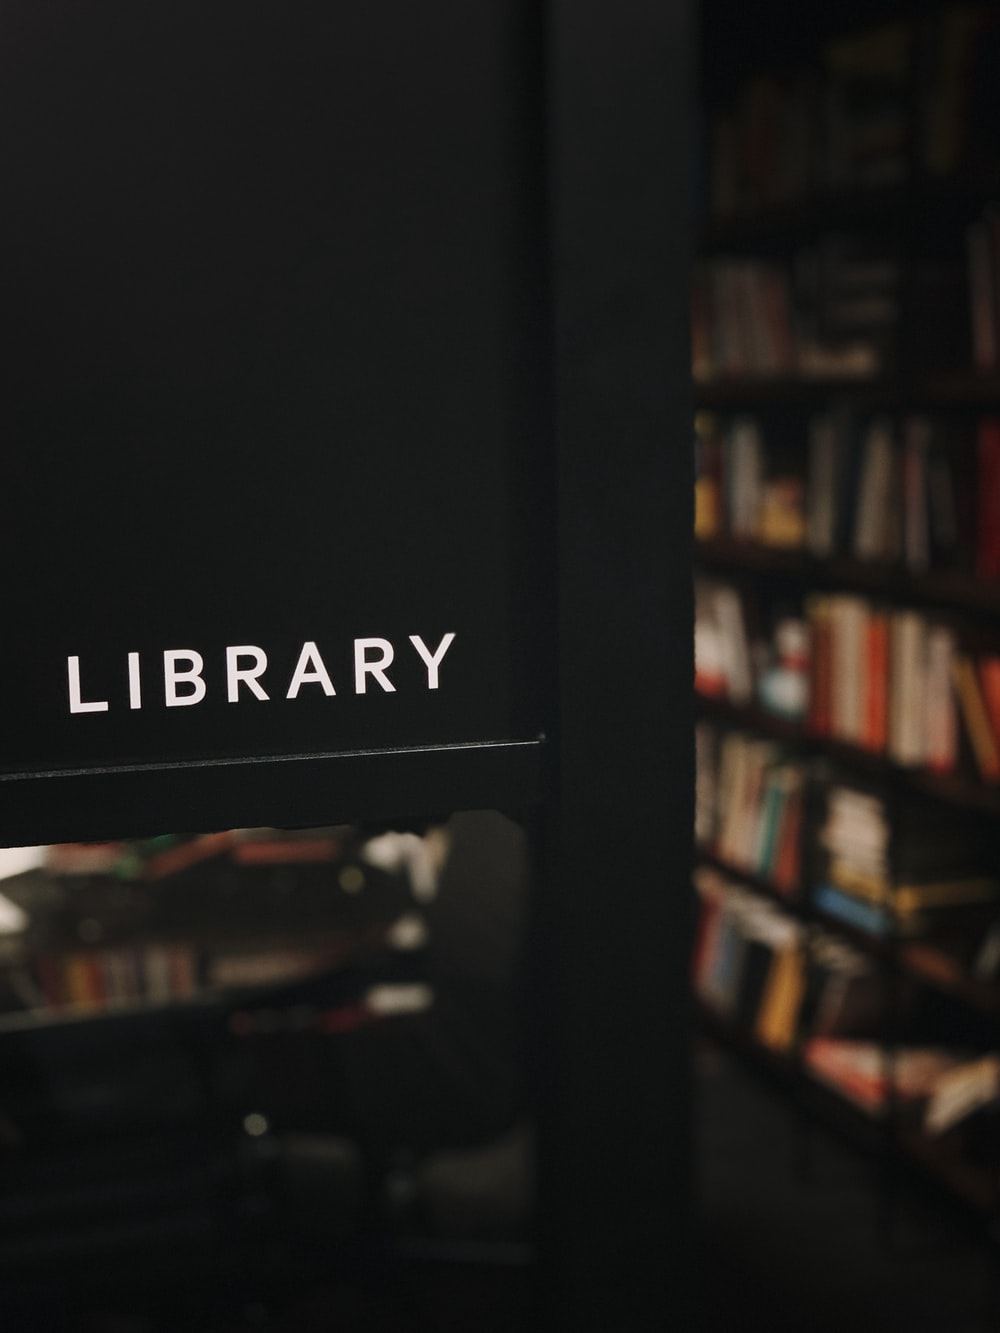 Library wooden sign